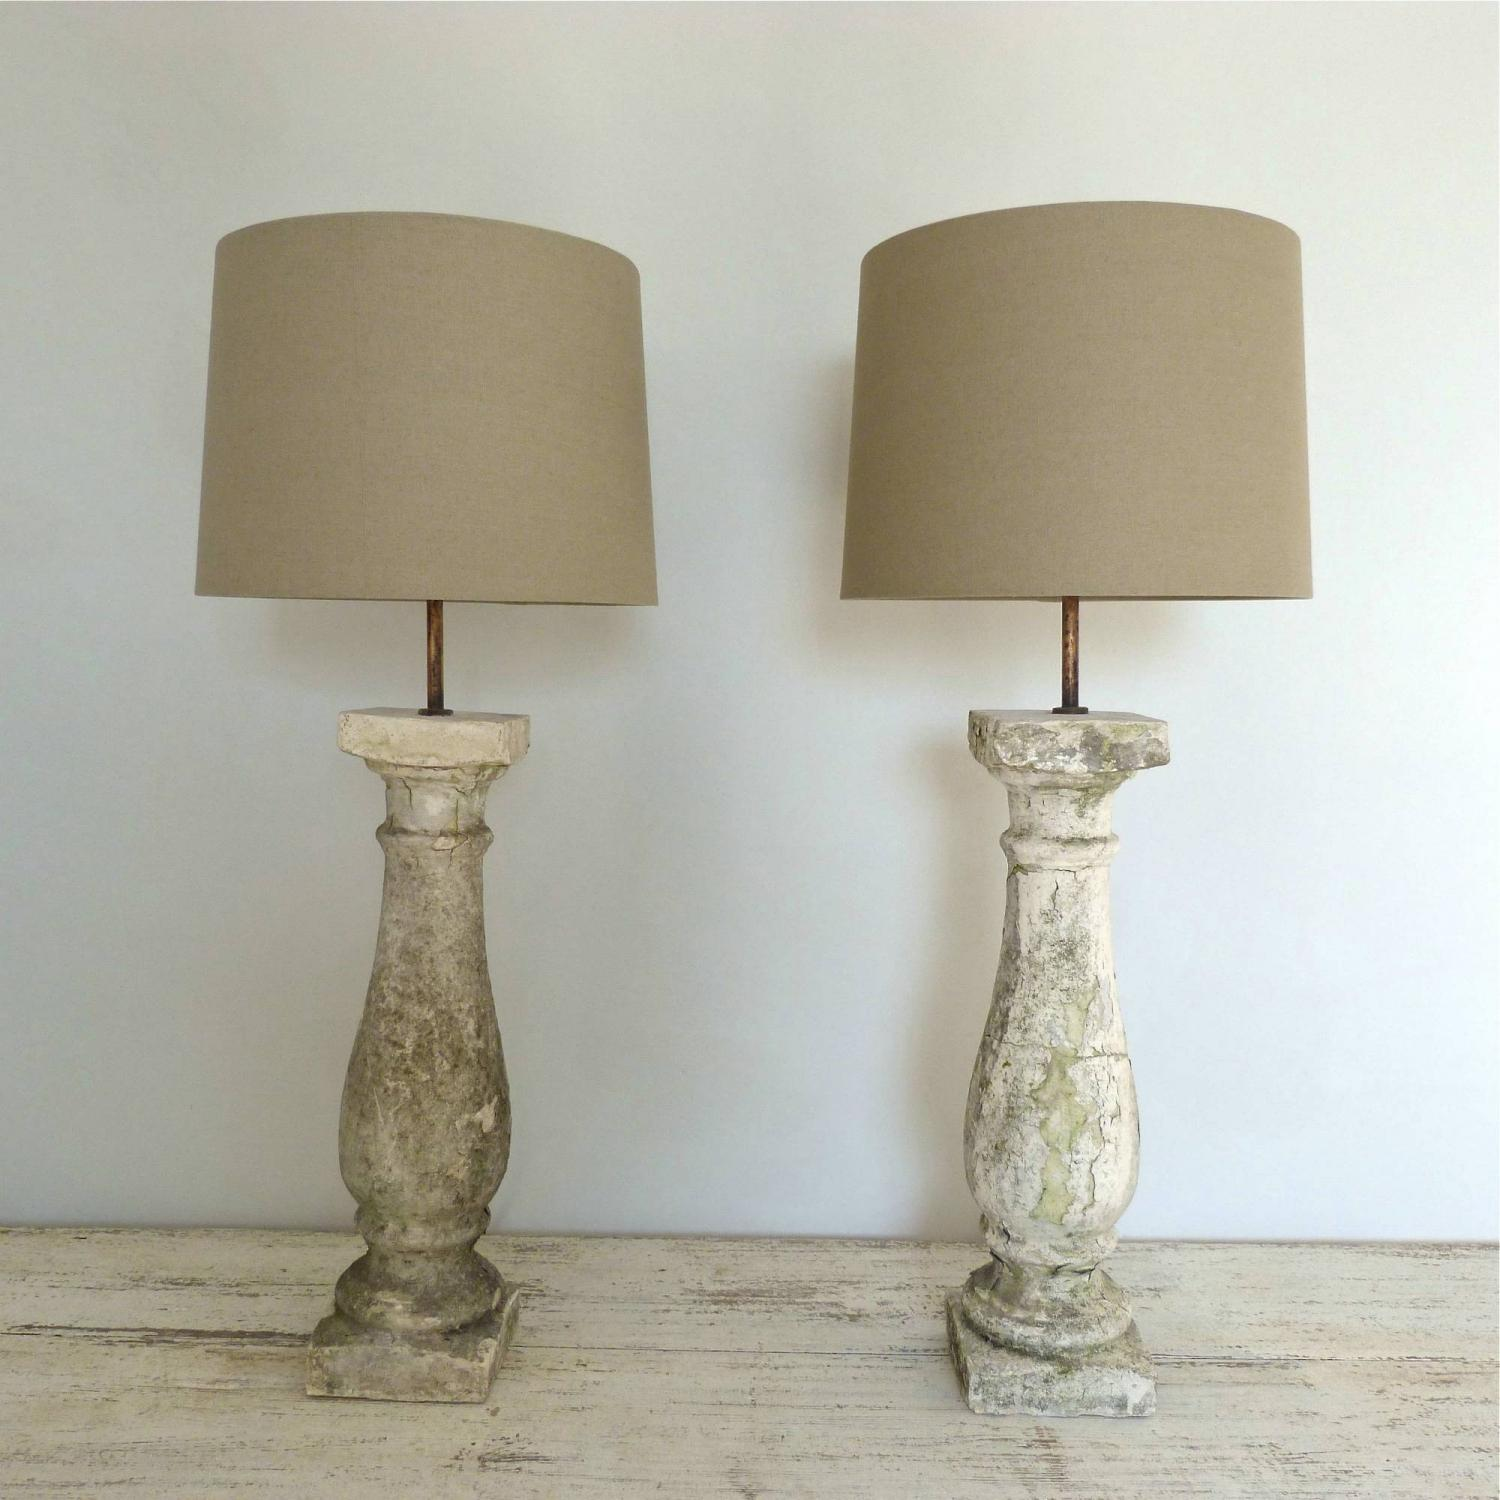 PAIR OF ANTIQUE STONE BALUSTRADE LAMPS